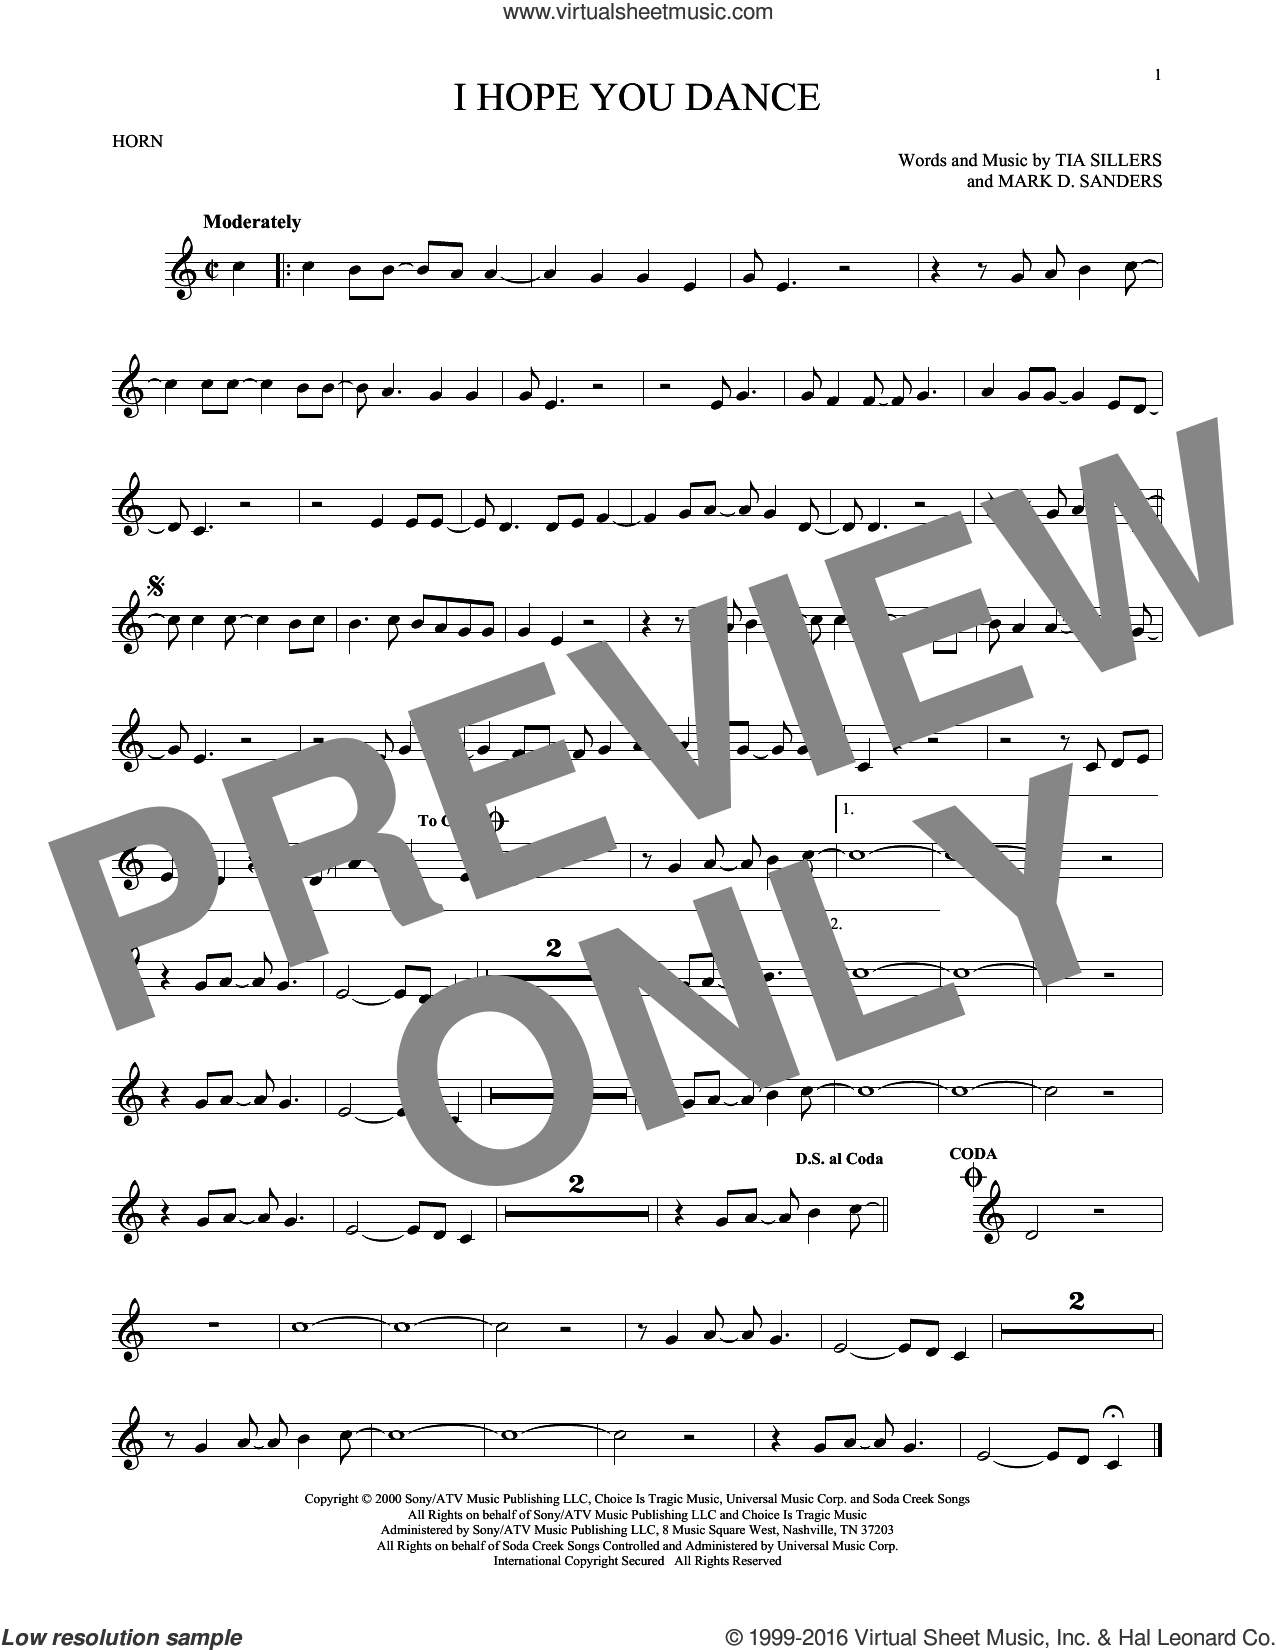 I Hope You Dance sheet music for horn solo by Lee Ann Womack with Sons of the Desert, Mark D. Sanders and Tia Sillers, intermediate skill level